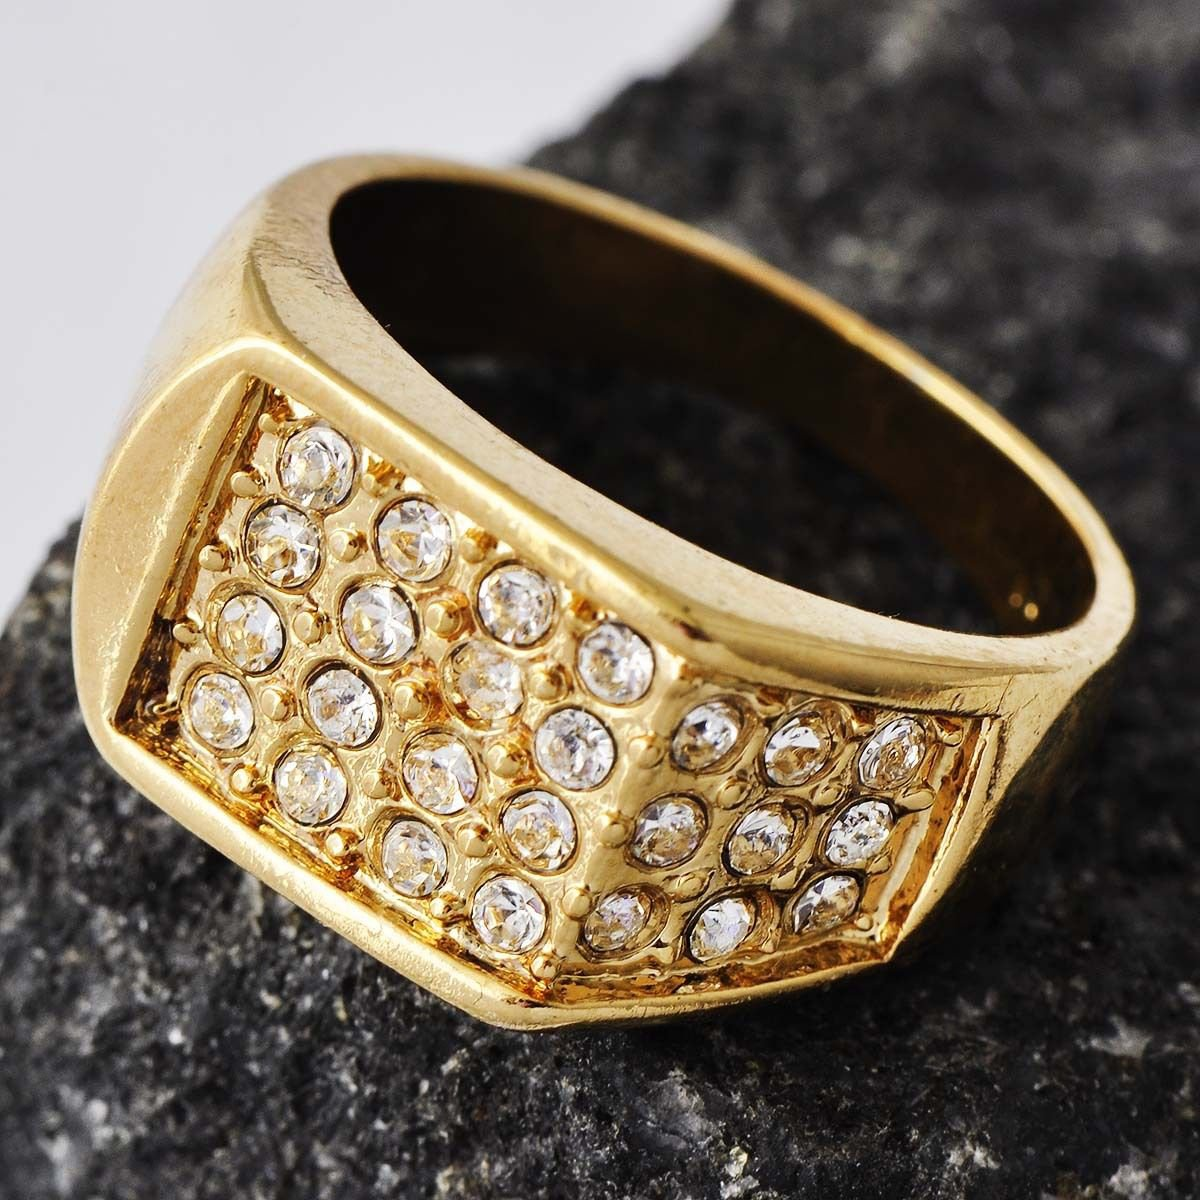 Fashion desaign gold filled cubic zircons unisex ring size 10 ! Gift & Jewelry